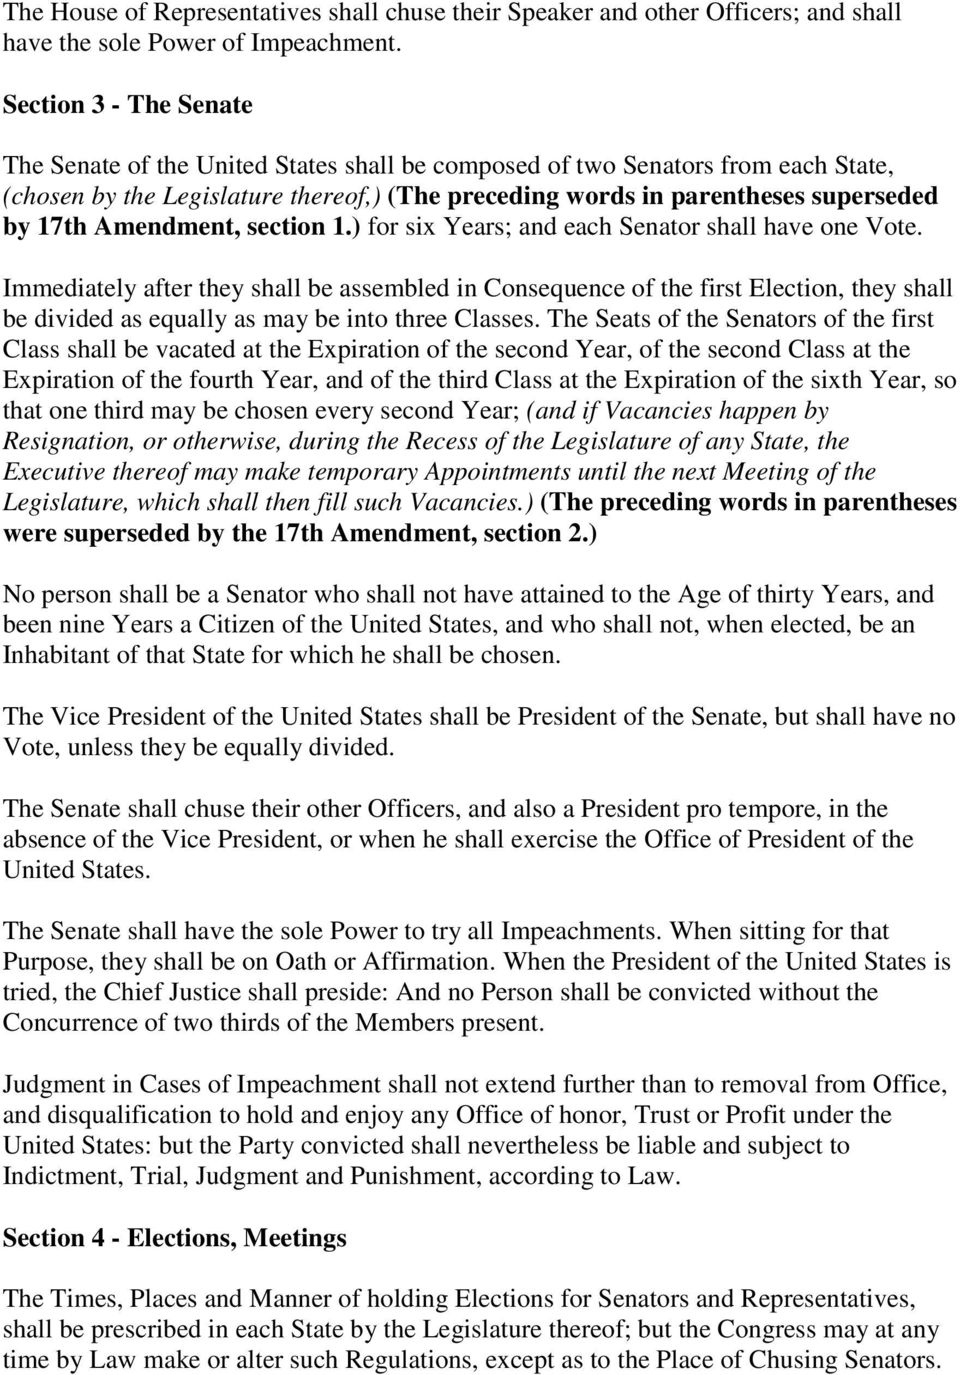 Amendment, section 1.) for six Years; and each Senator shall have one Vote.